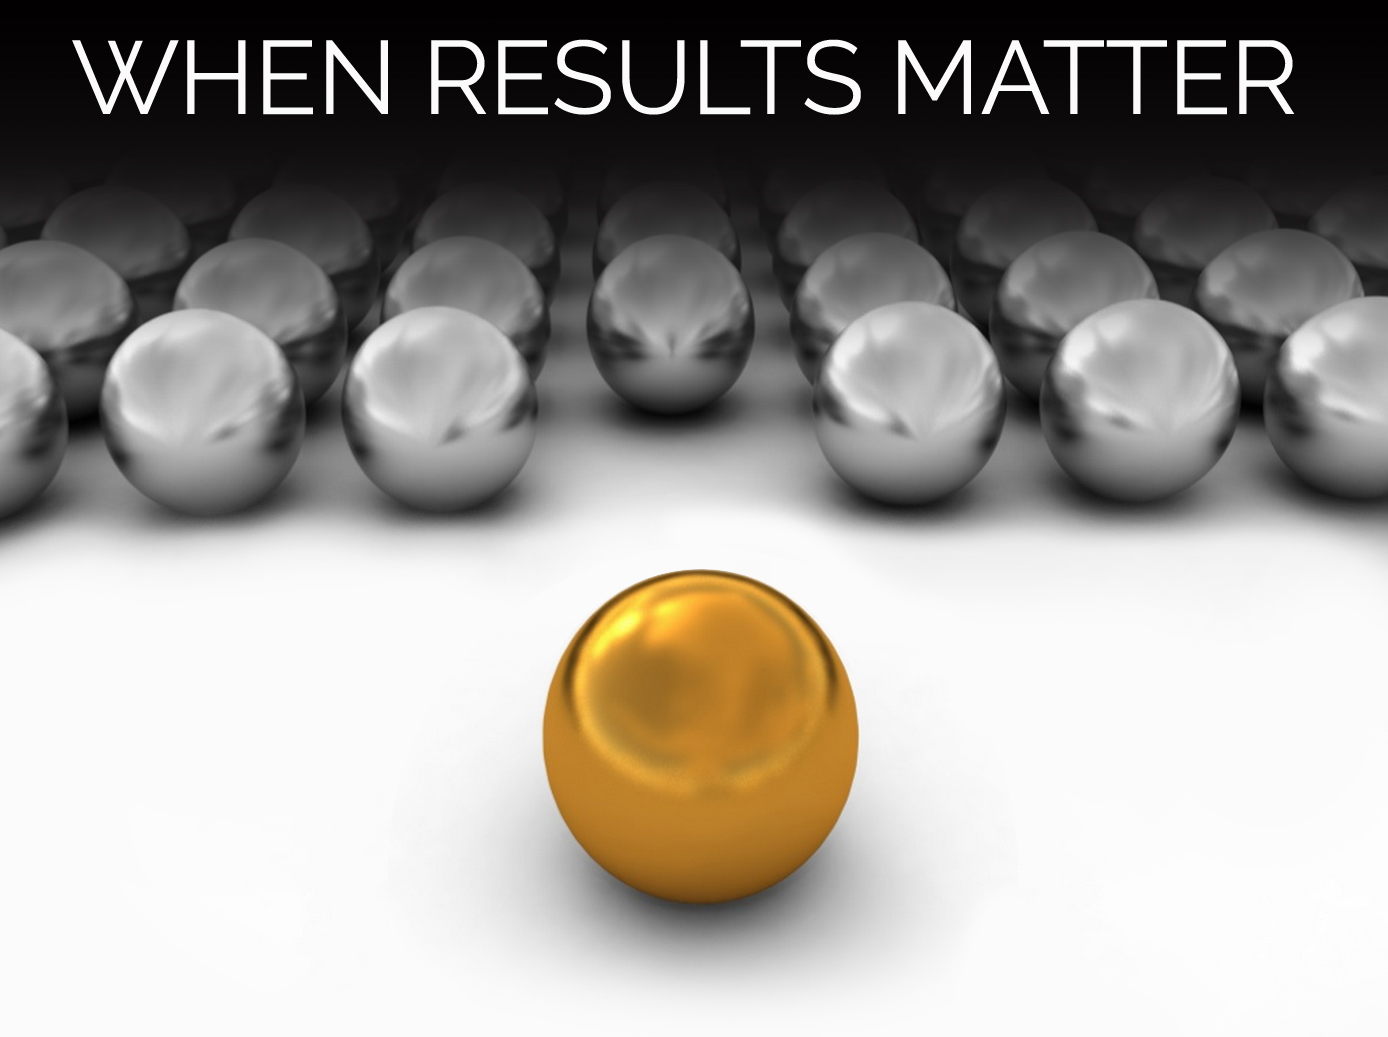 When Results Matter